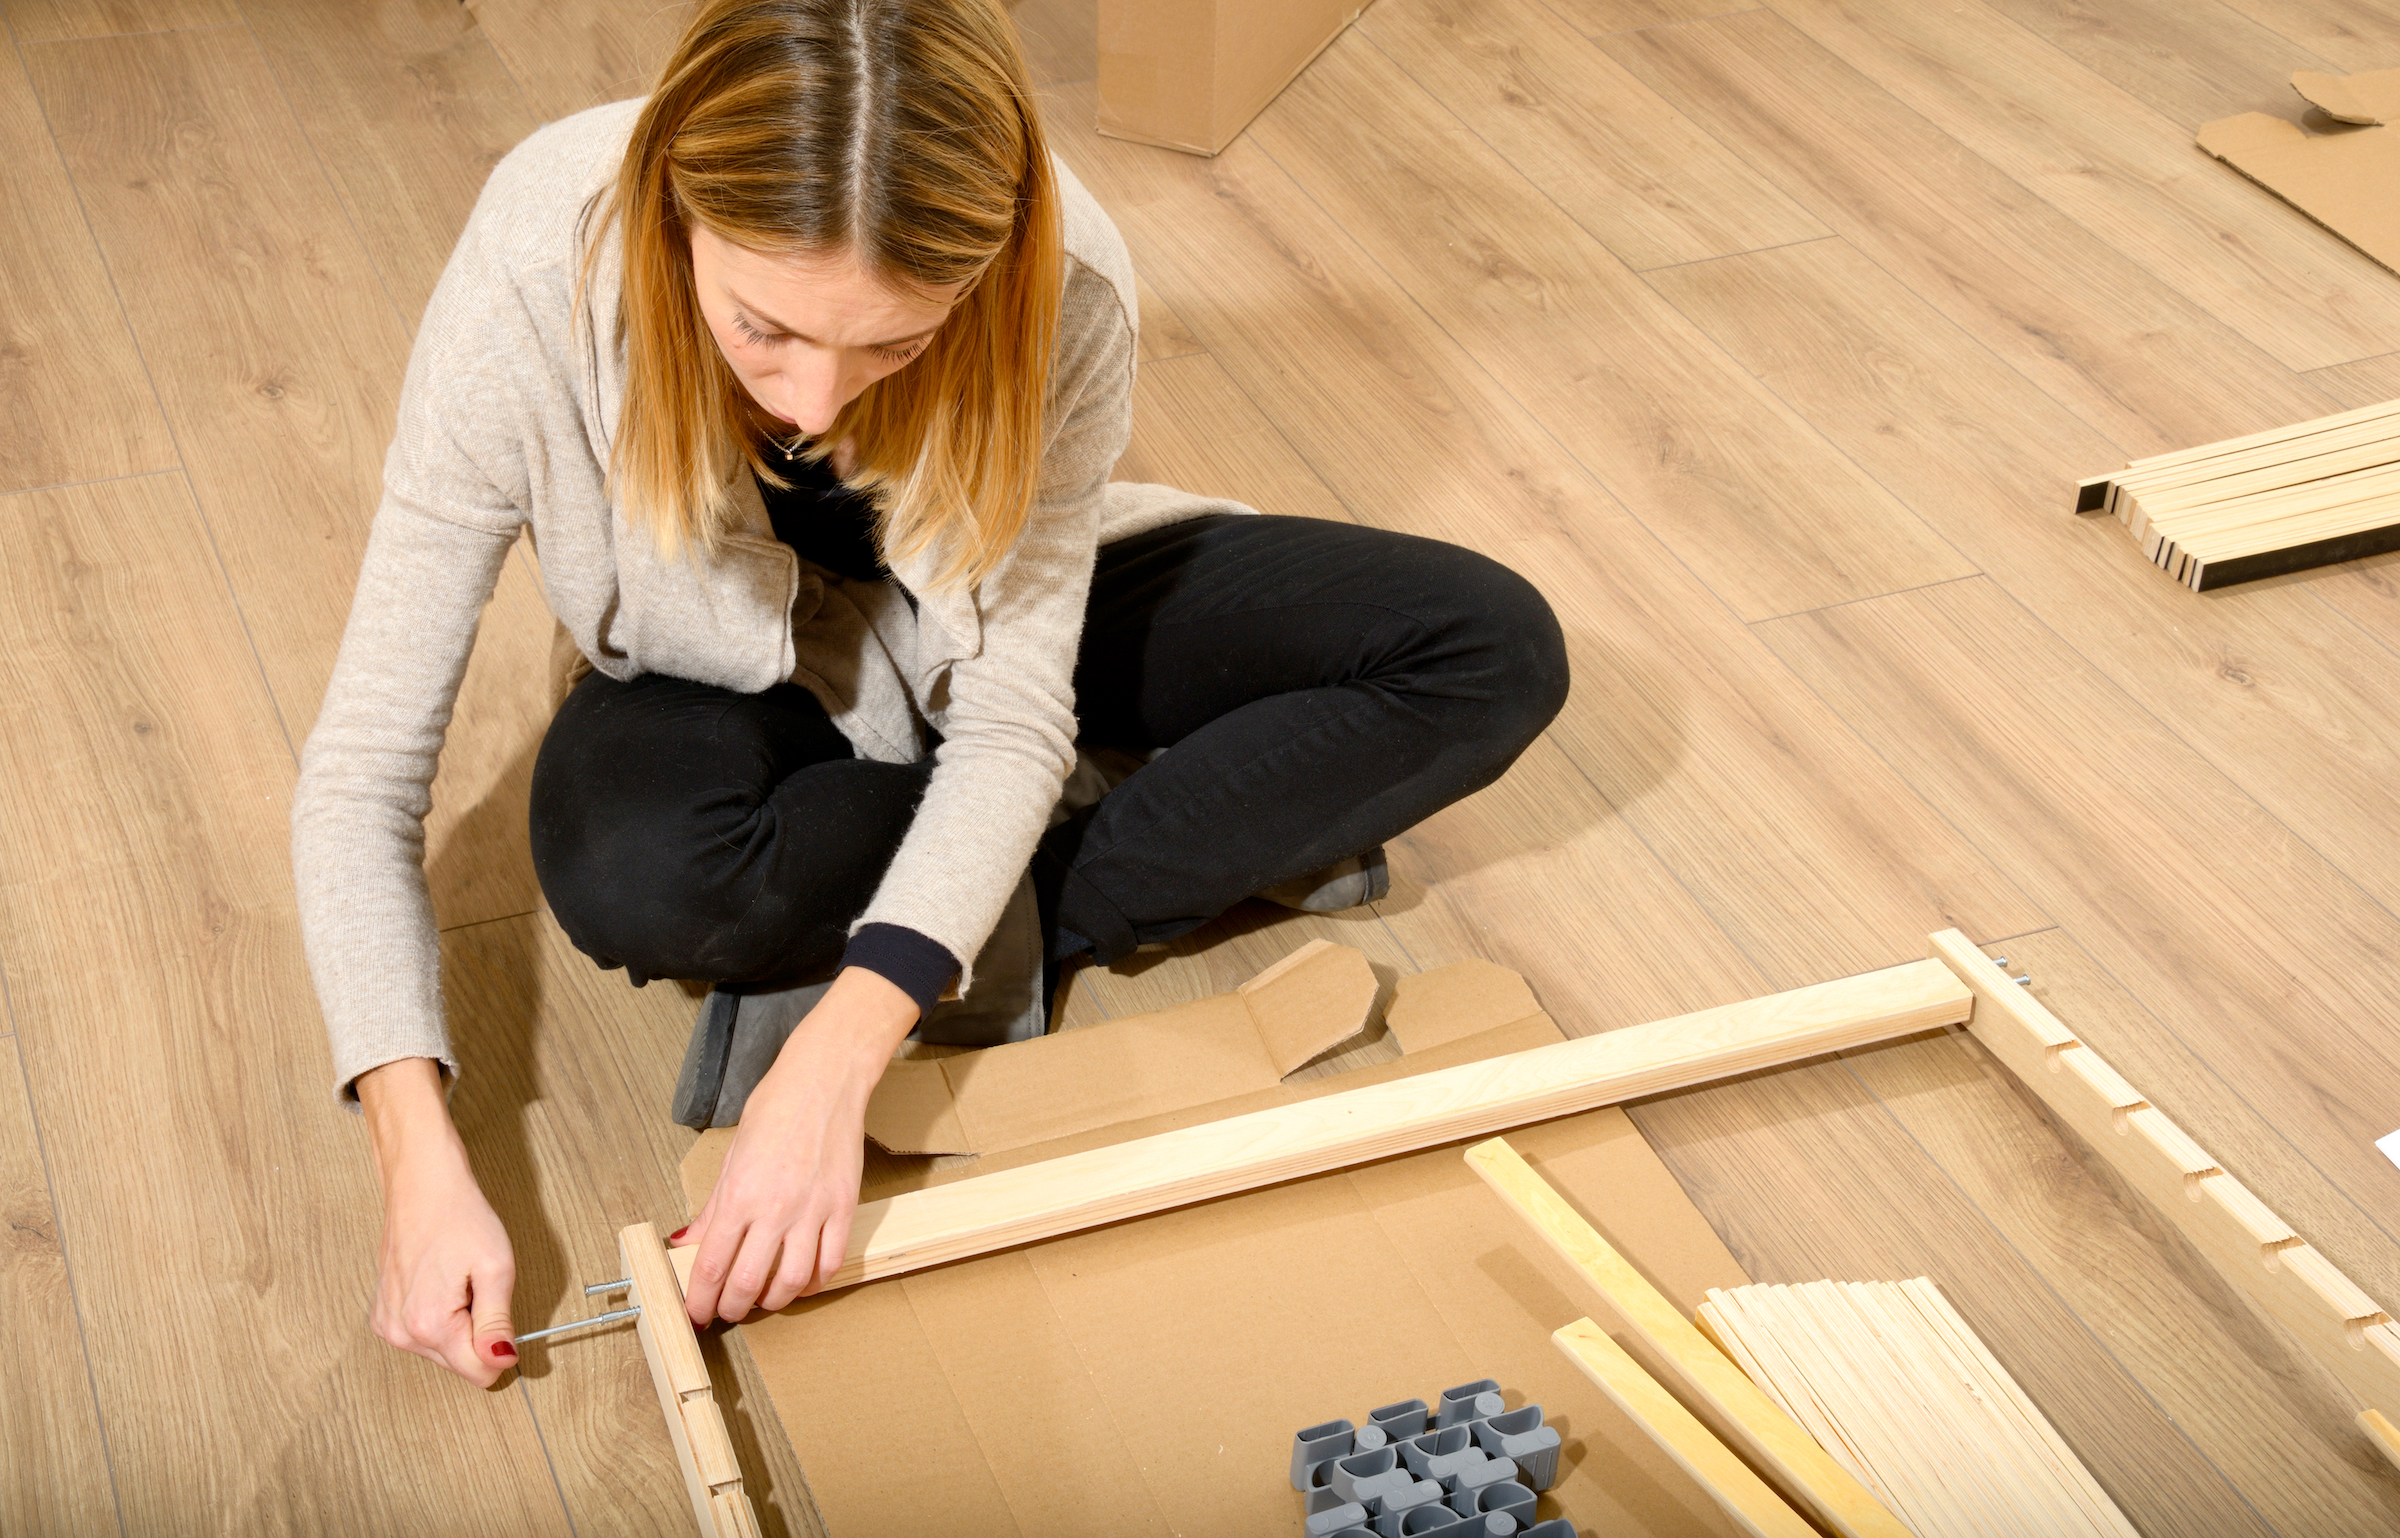 Options for furniture assembly services near you.